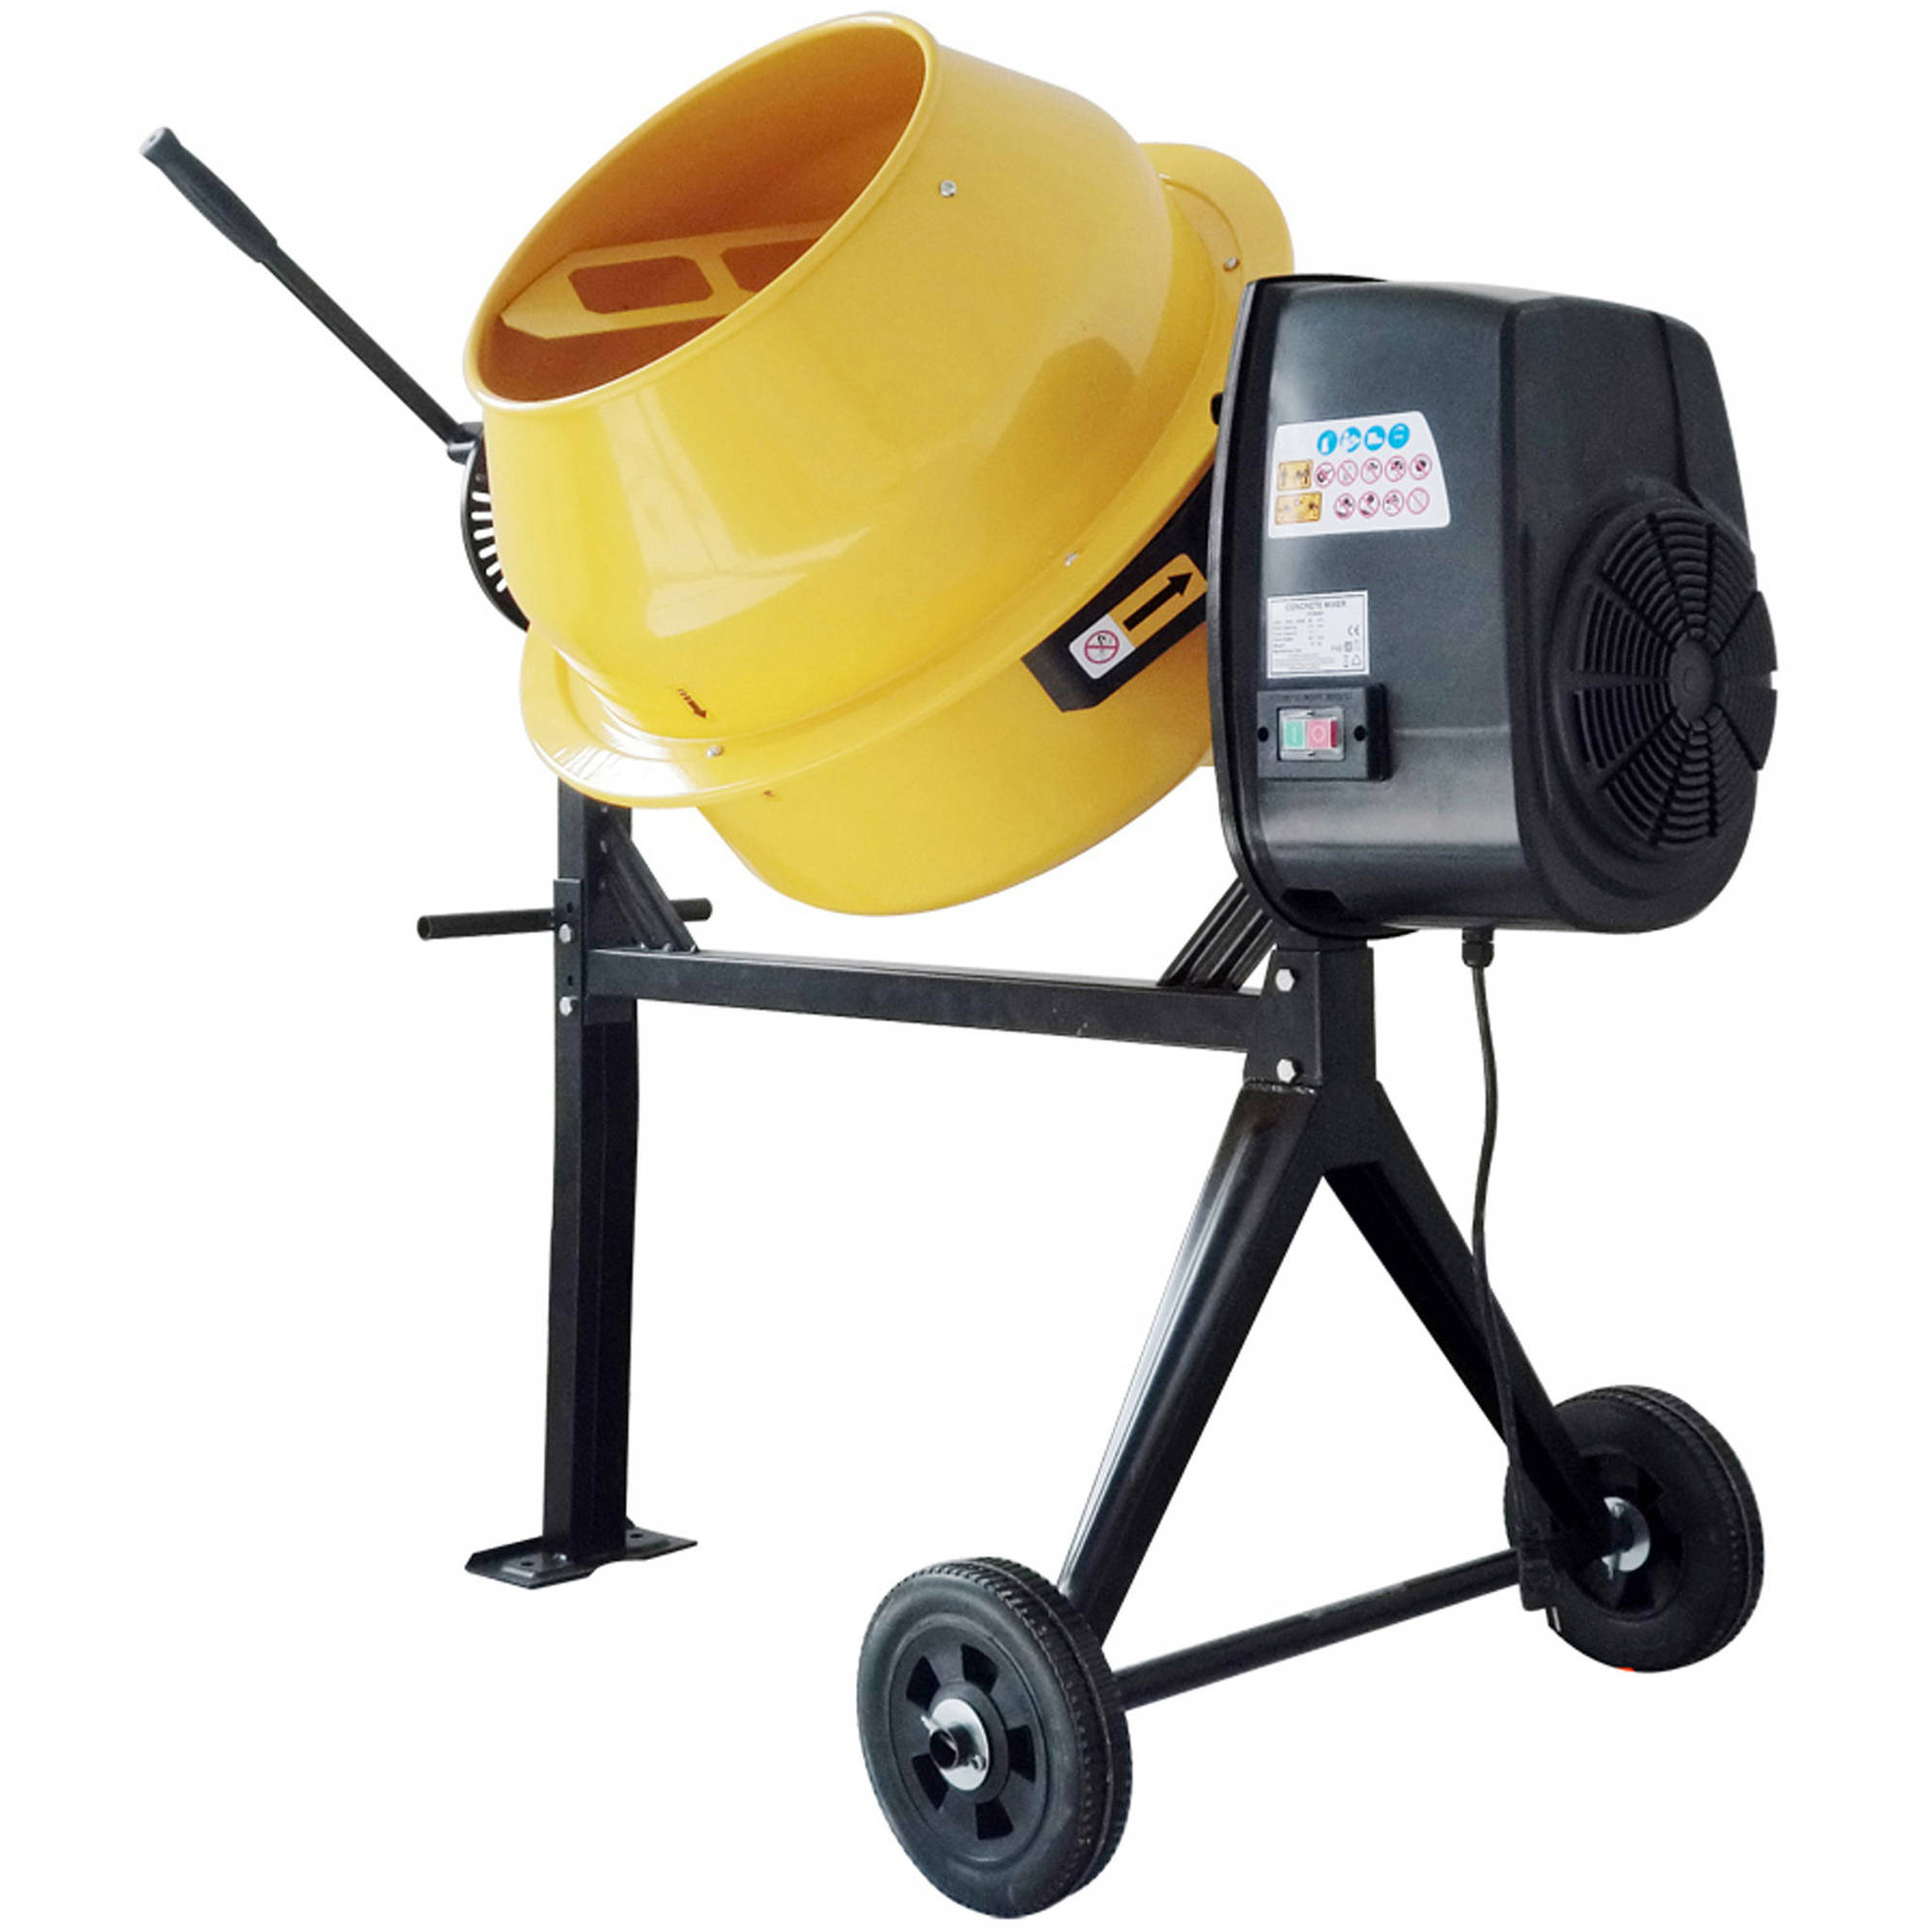 Pro-Series 3.5 Cubic Foot Electric Cement Mixer by New Buffalo Corp.